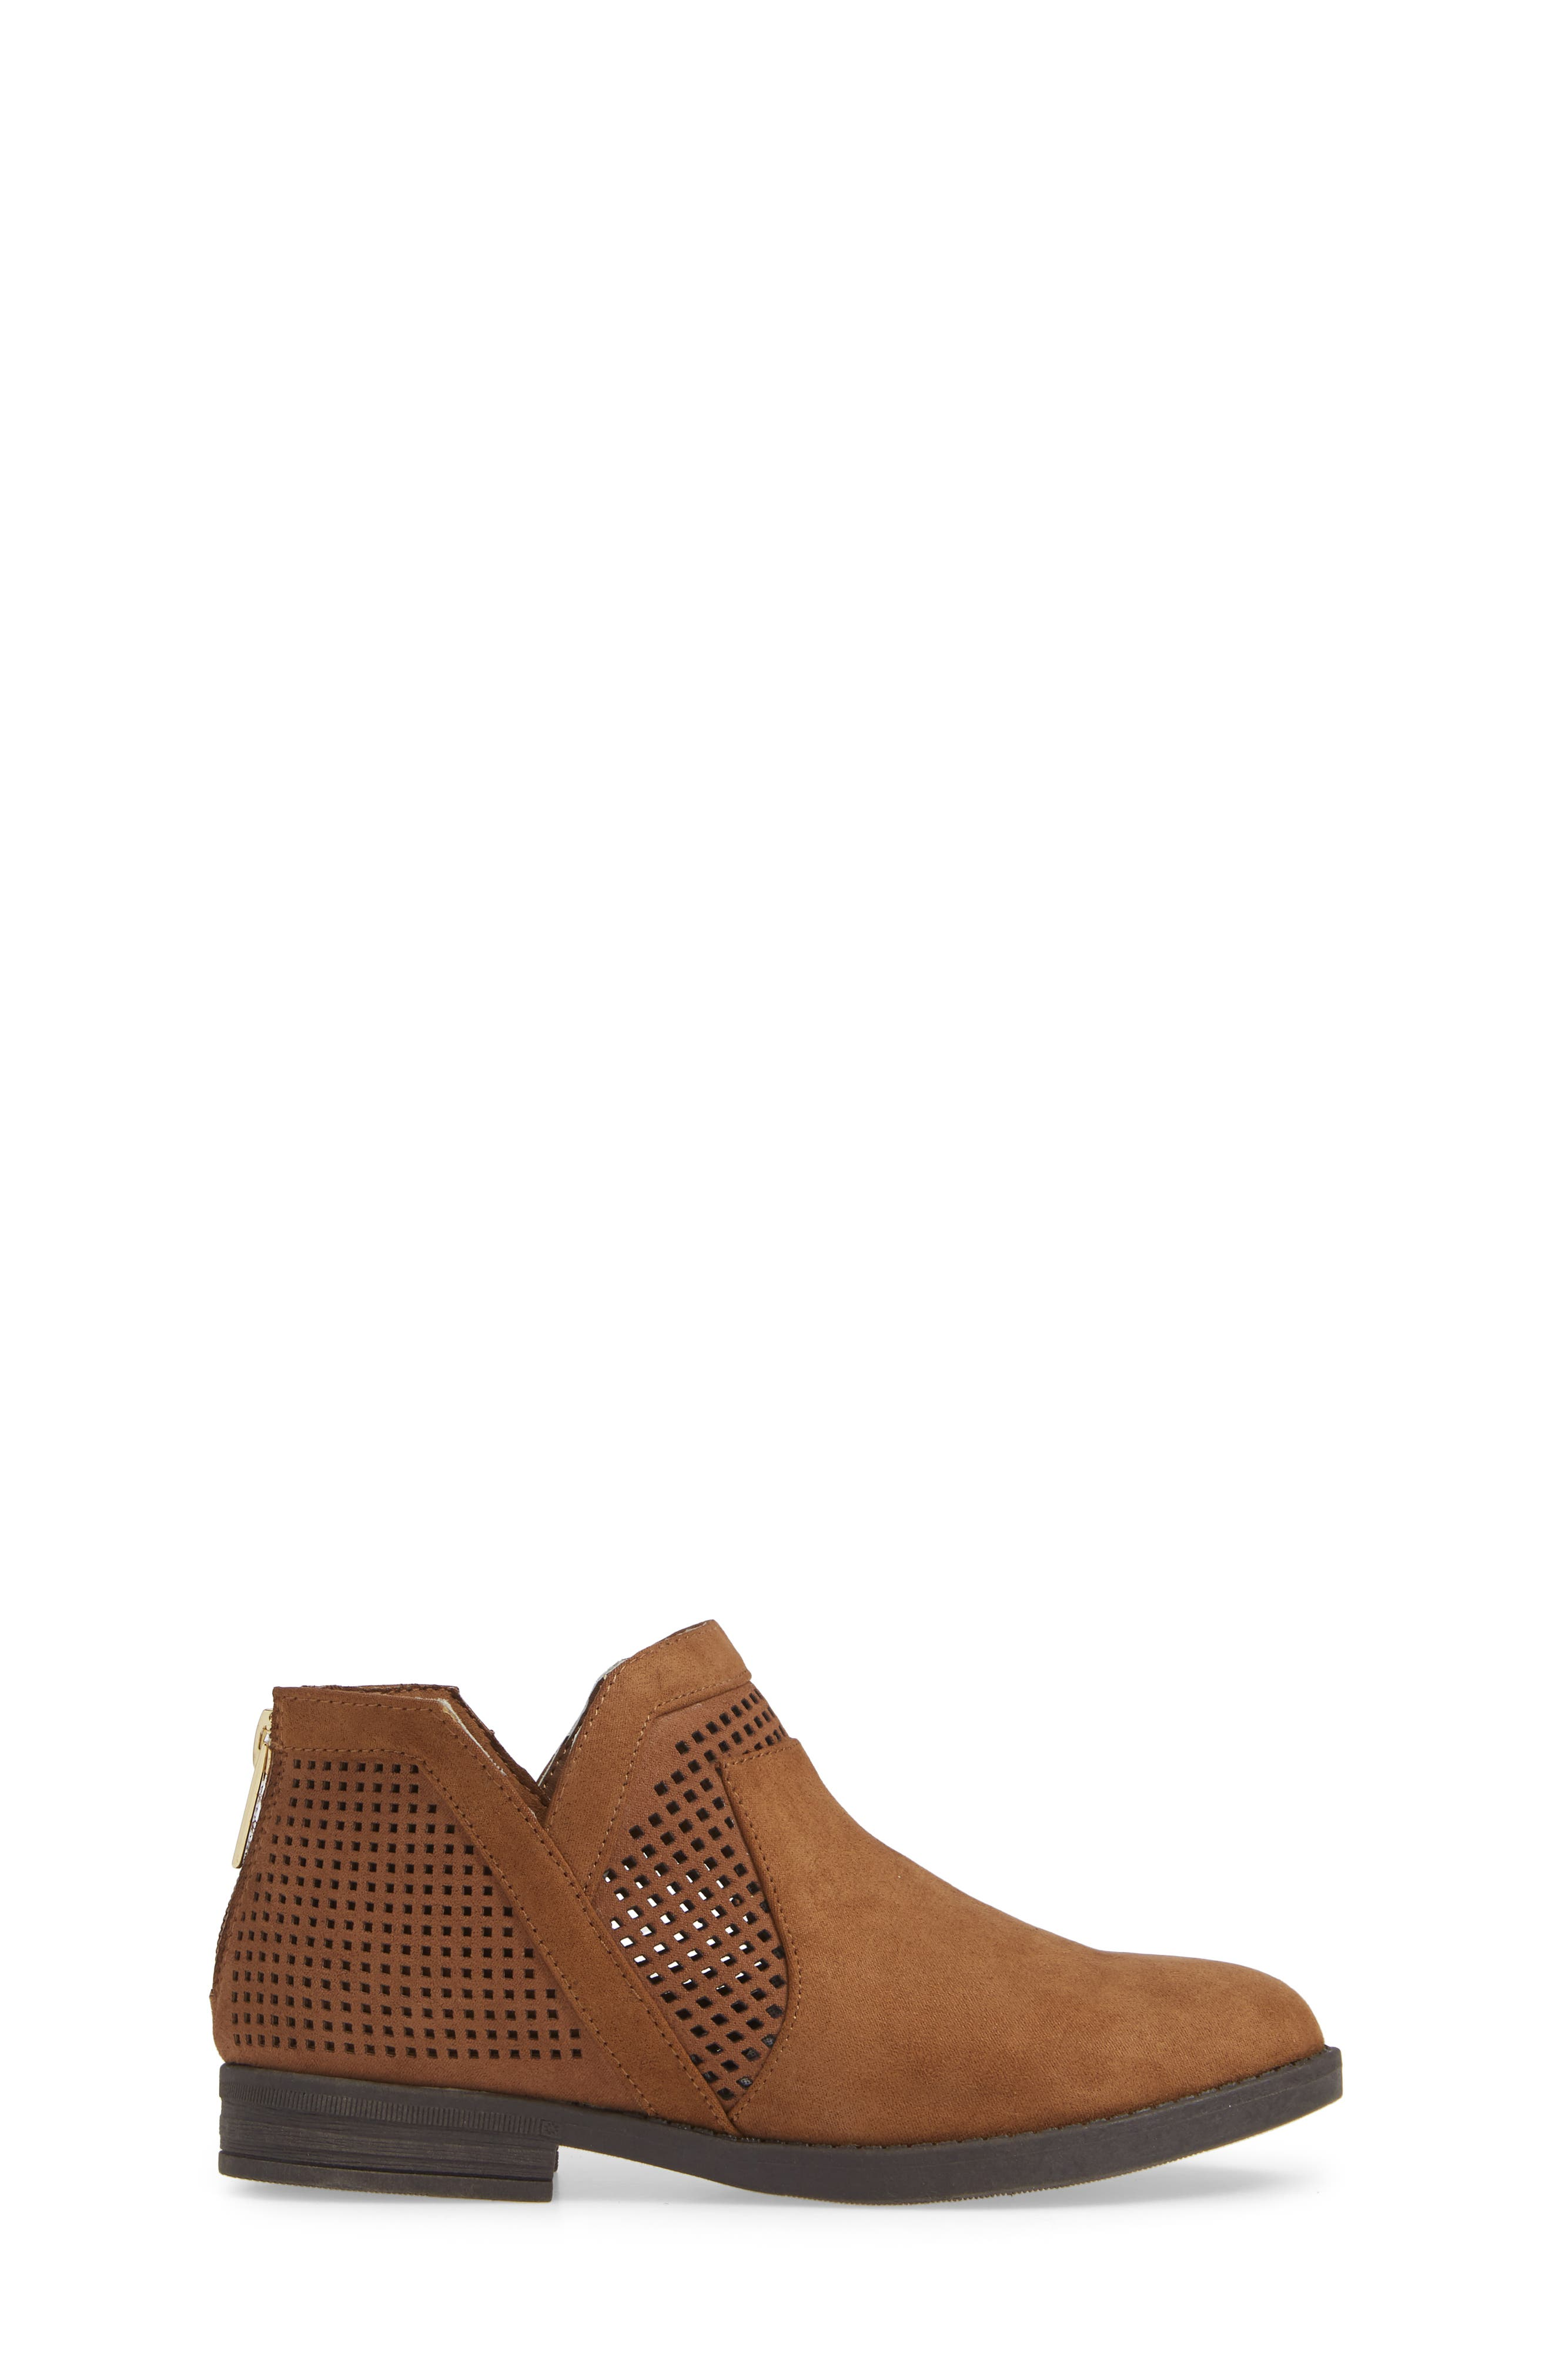 Wild Westy Perforated Bootie,                             Alternate thumbnail 3, color,                             206